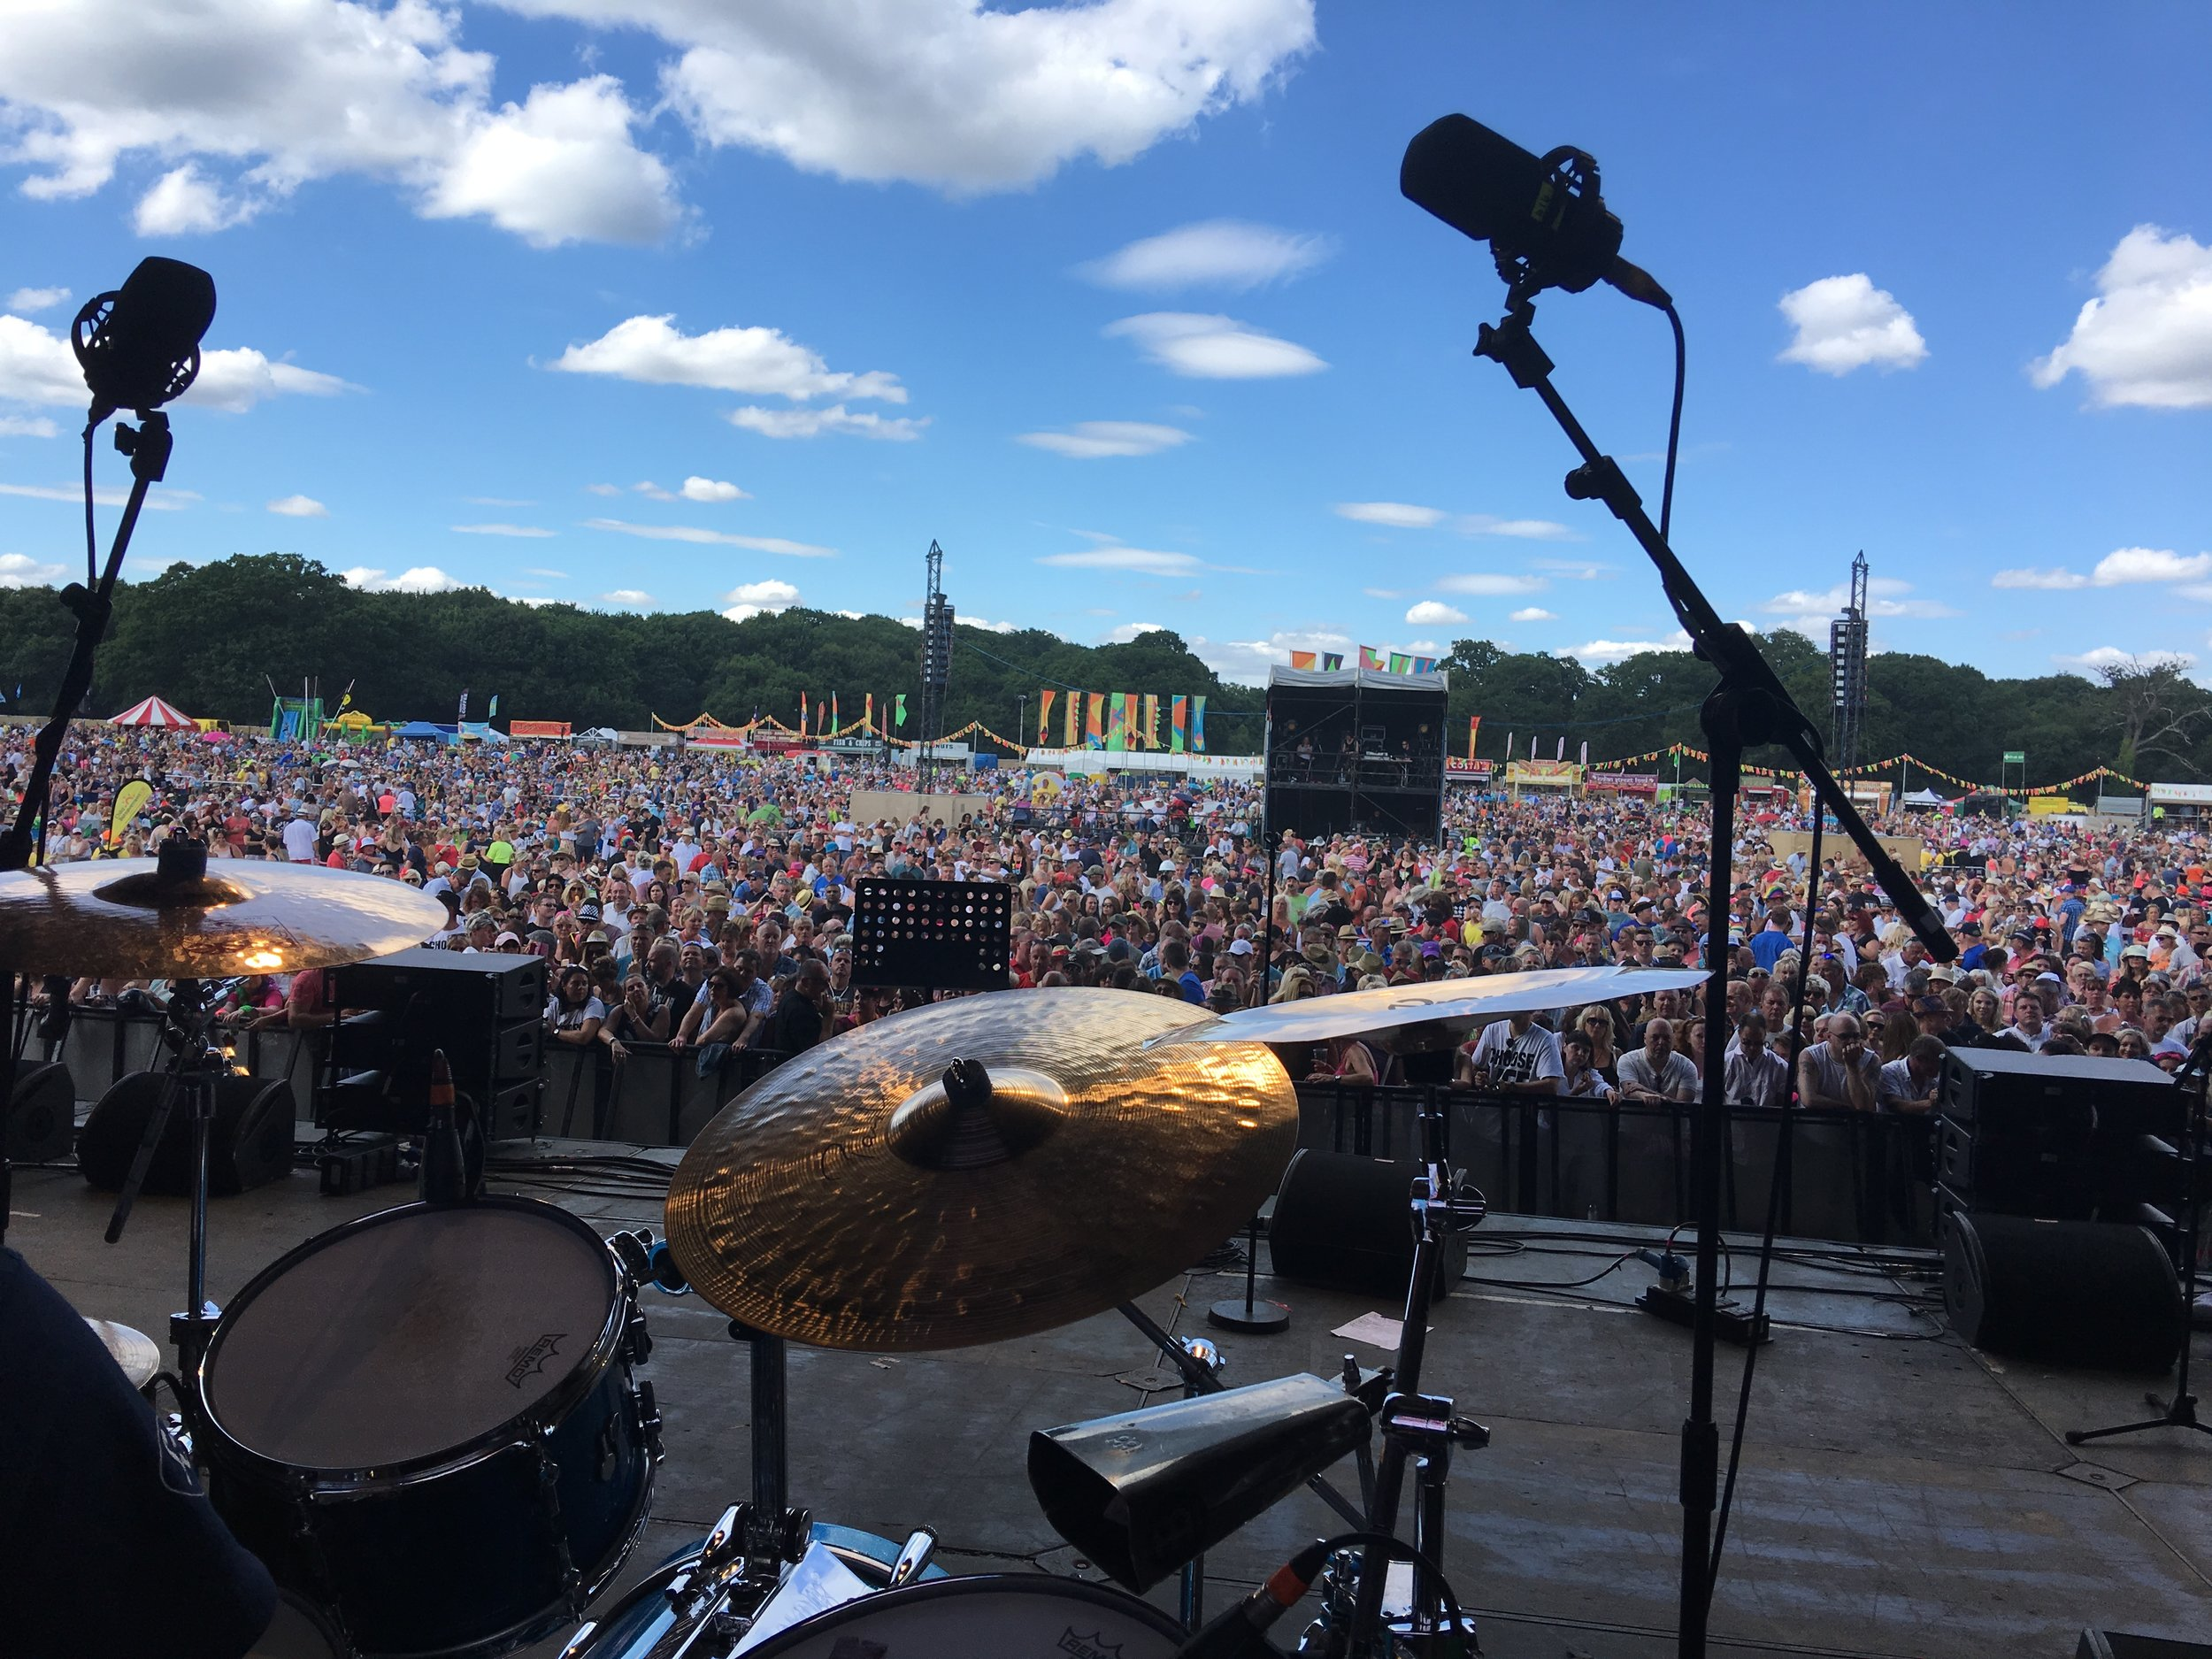 My view from the kit with Kid Creole & The Coconuts (Coconuts not yet on stage).